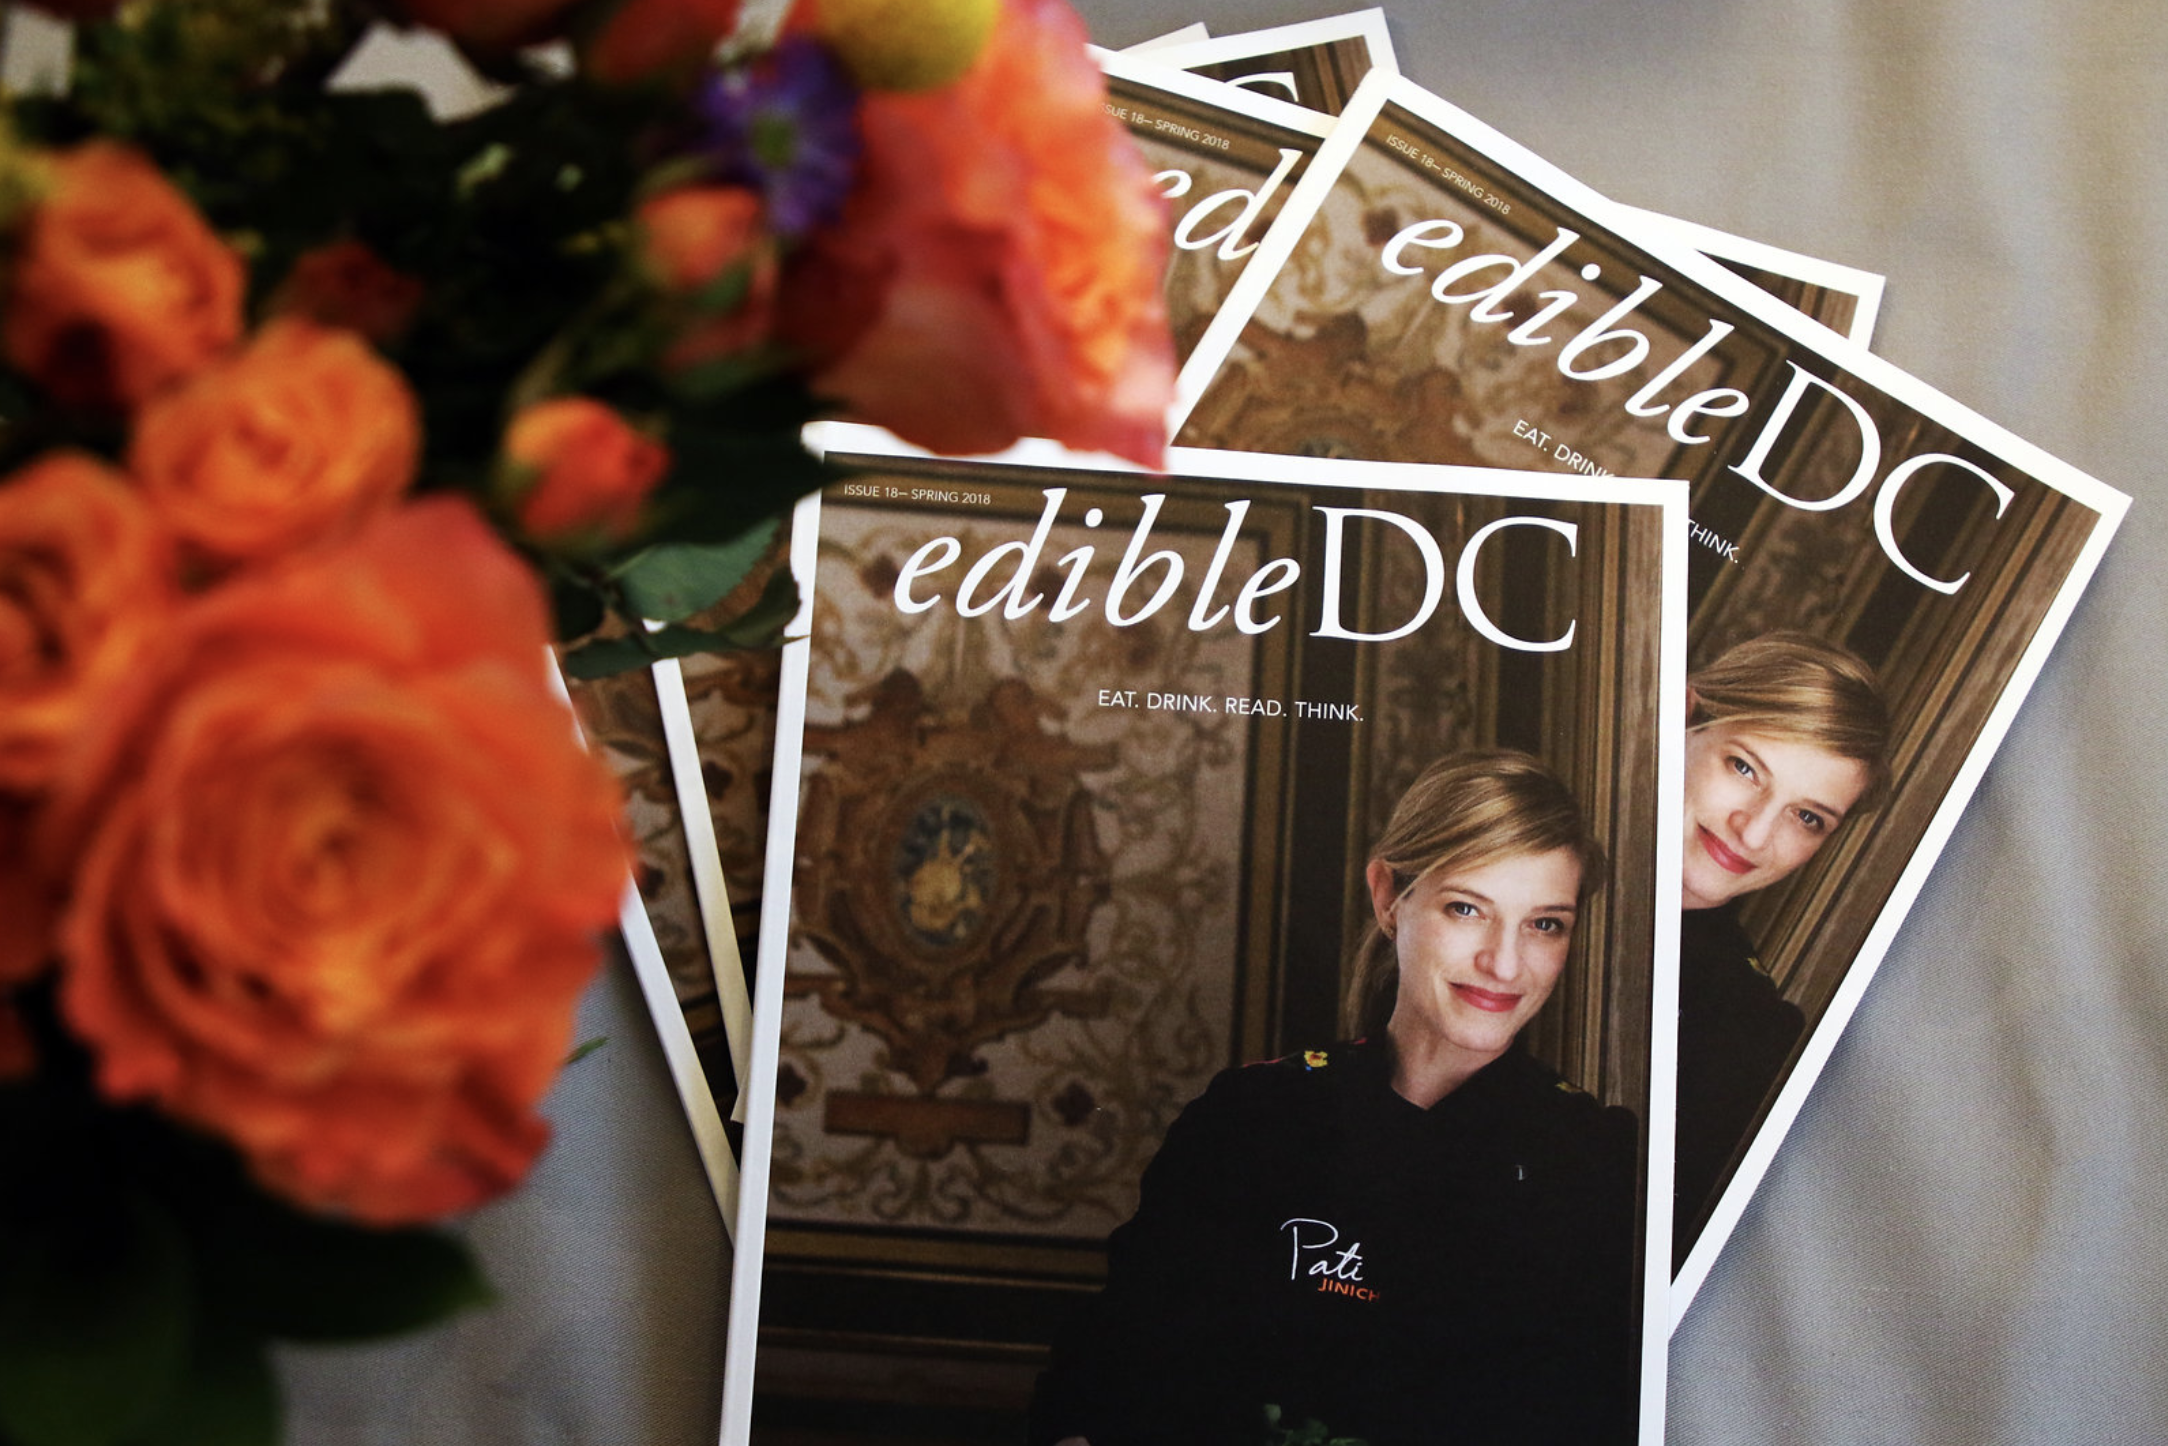 The Spring issue of EdibleDC Magazine.